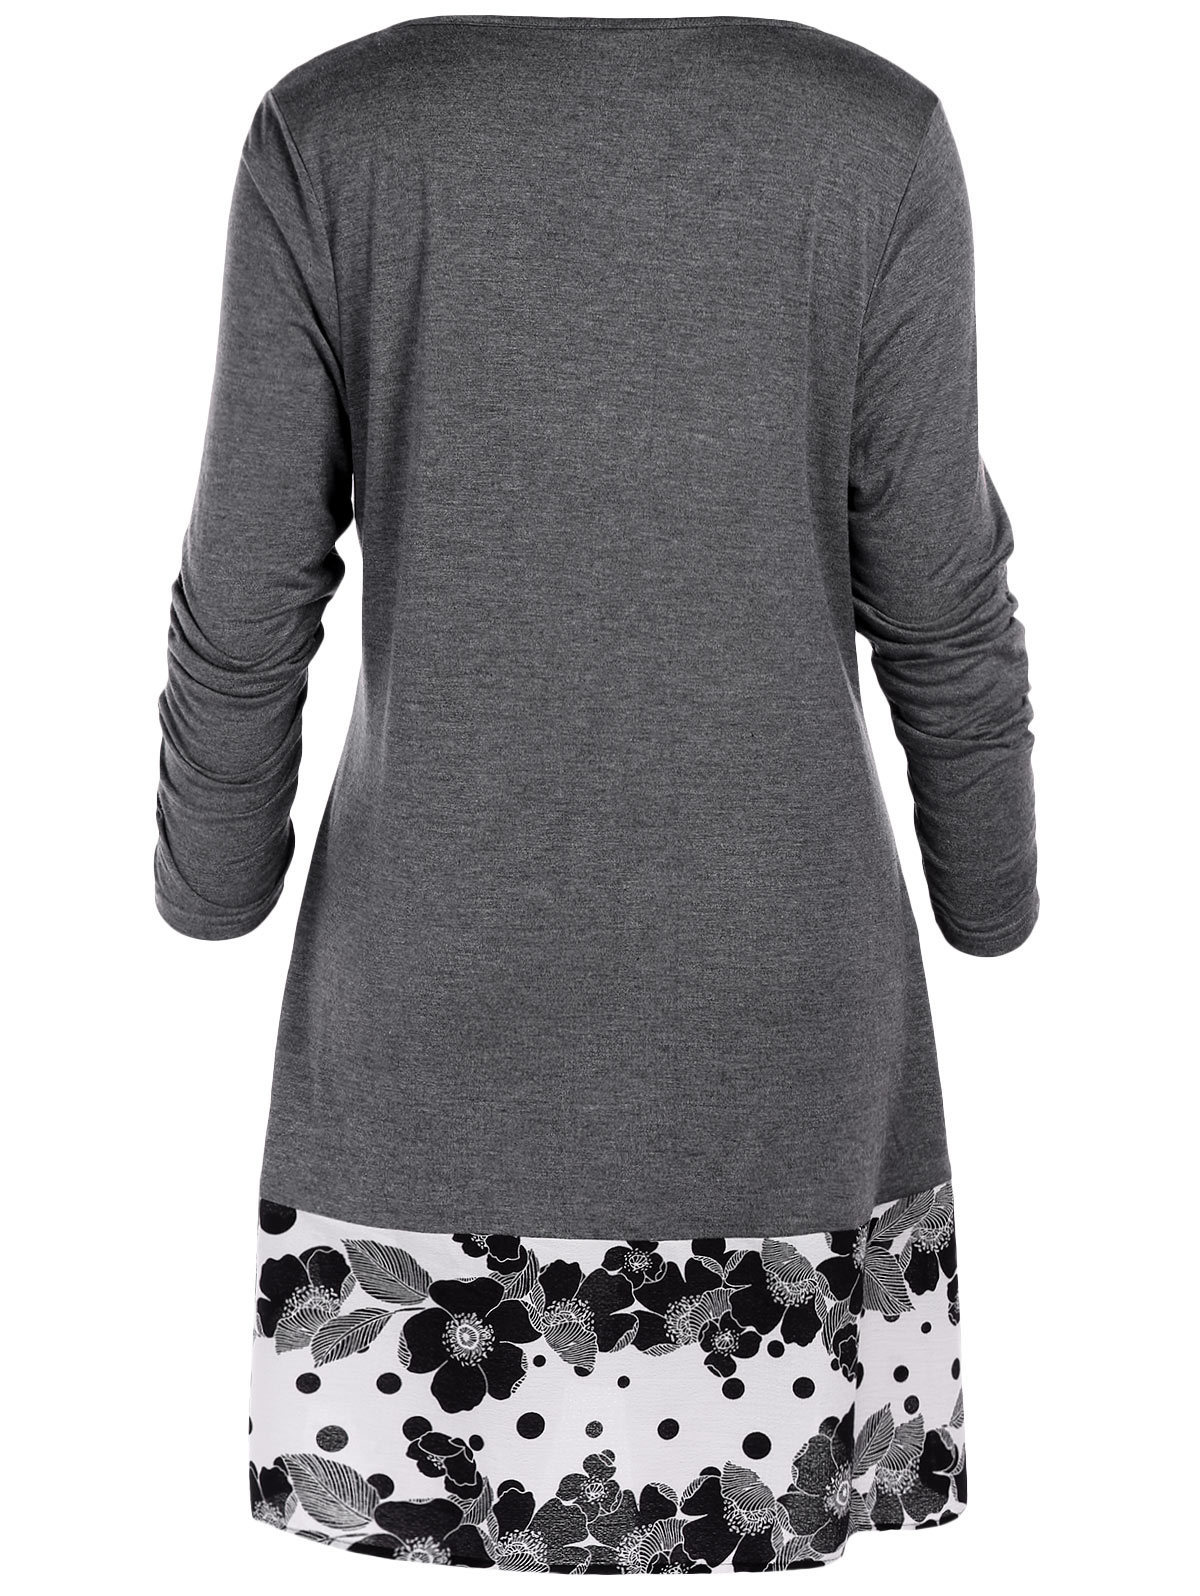 Wipalo Plus Size 5xl Draped Floral Tunic Shirts Long Sleeve O-neck Buttons Embellished Women Blouse Spring Casual Tops Tee Q190429